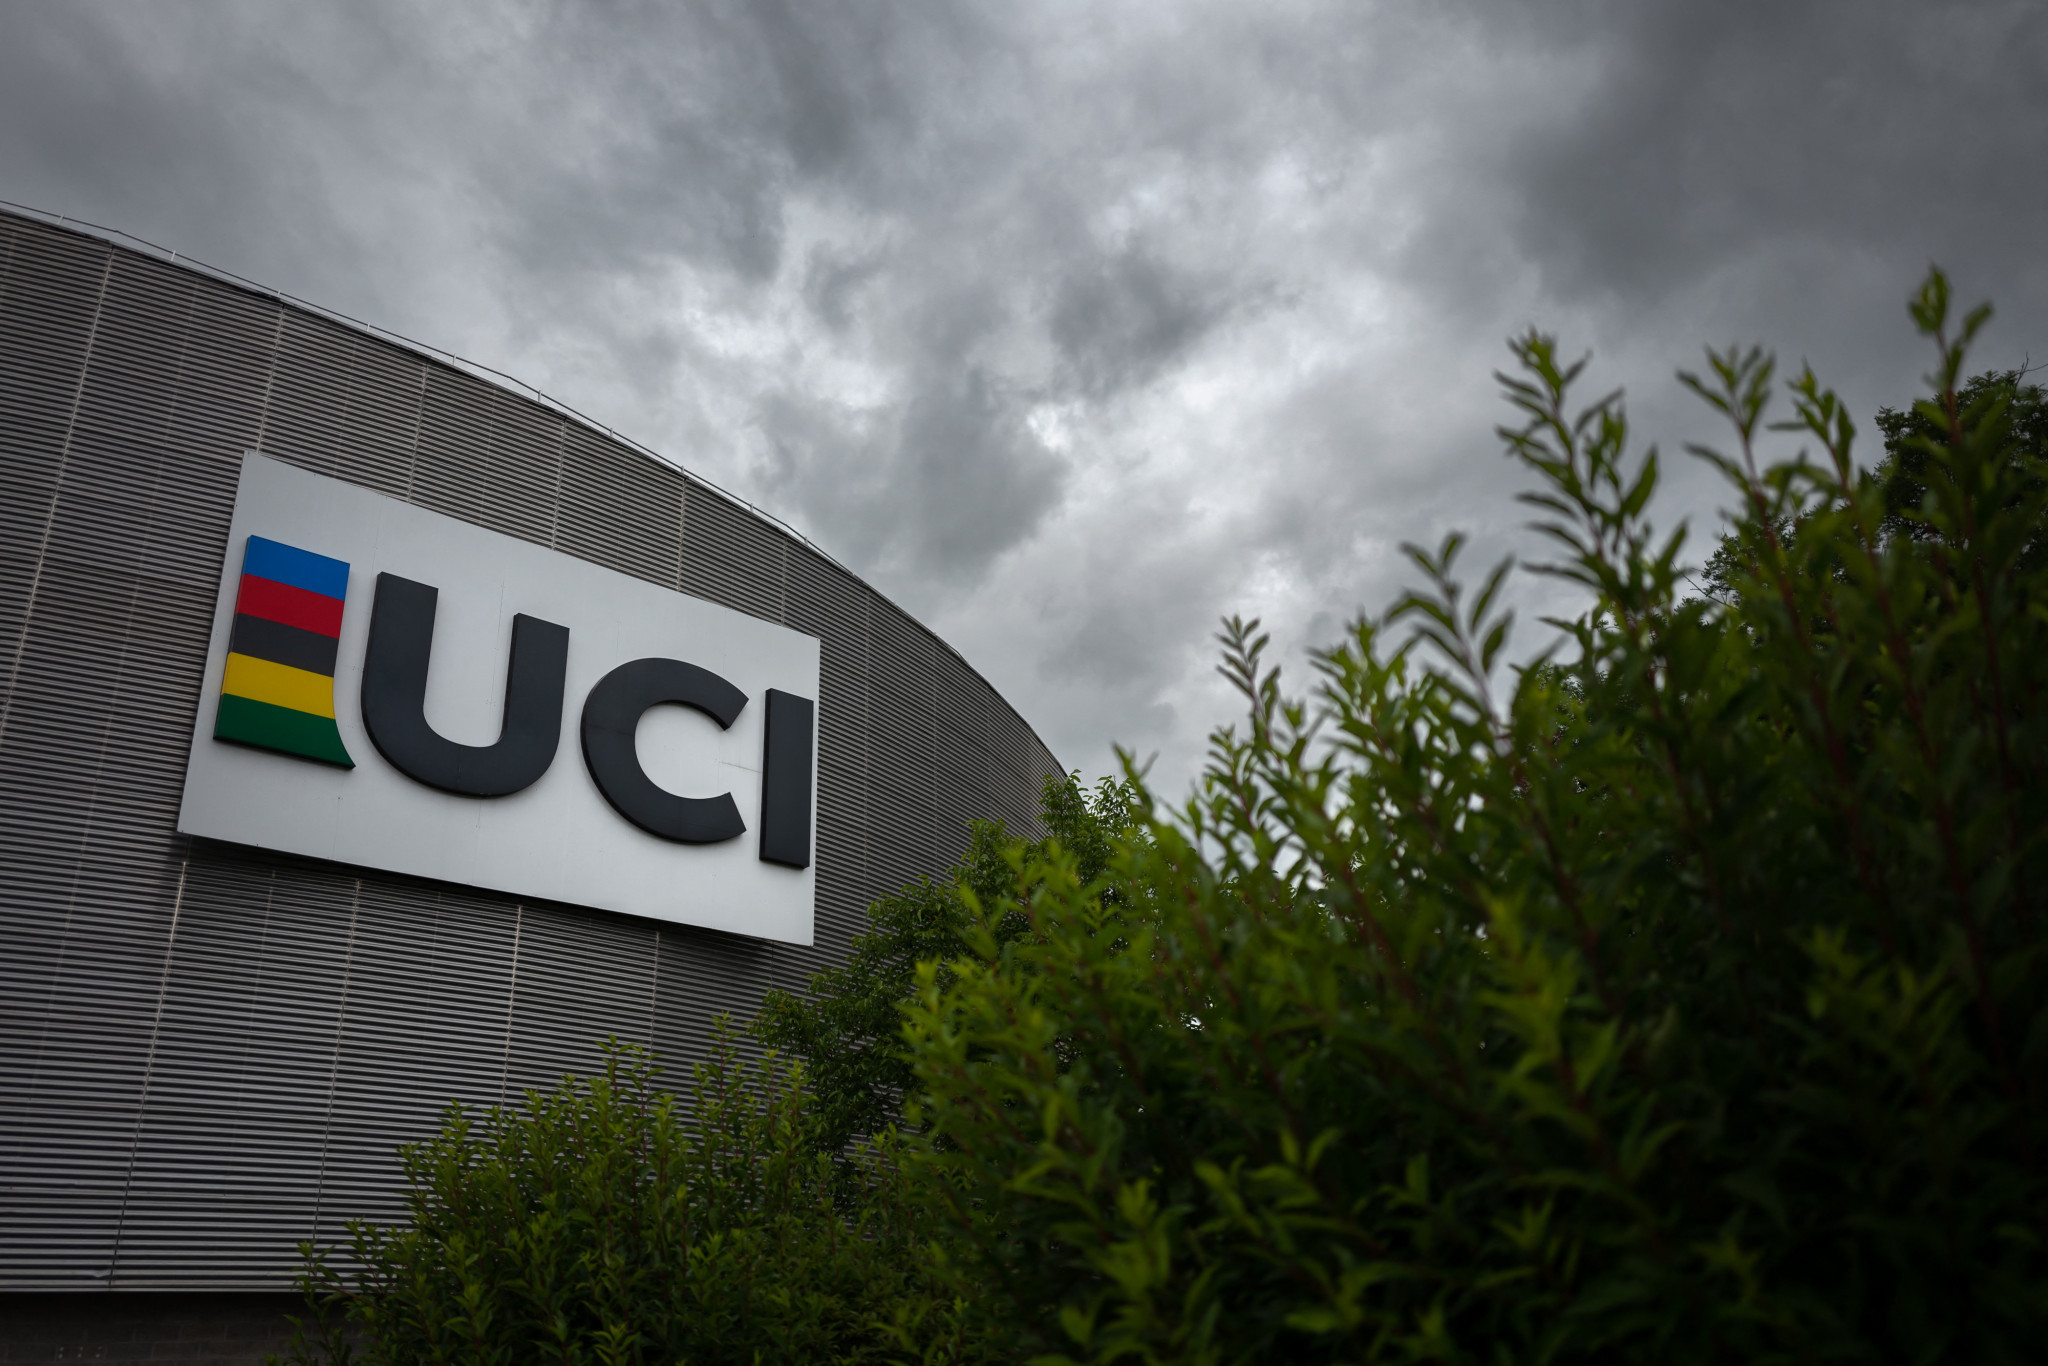 UCI and University of Lausanne sign cooperation agreement to boost education and research